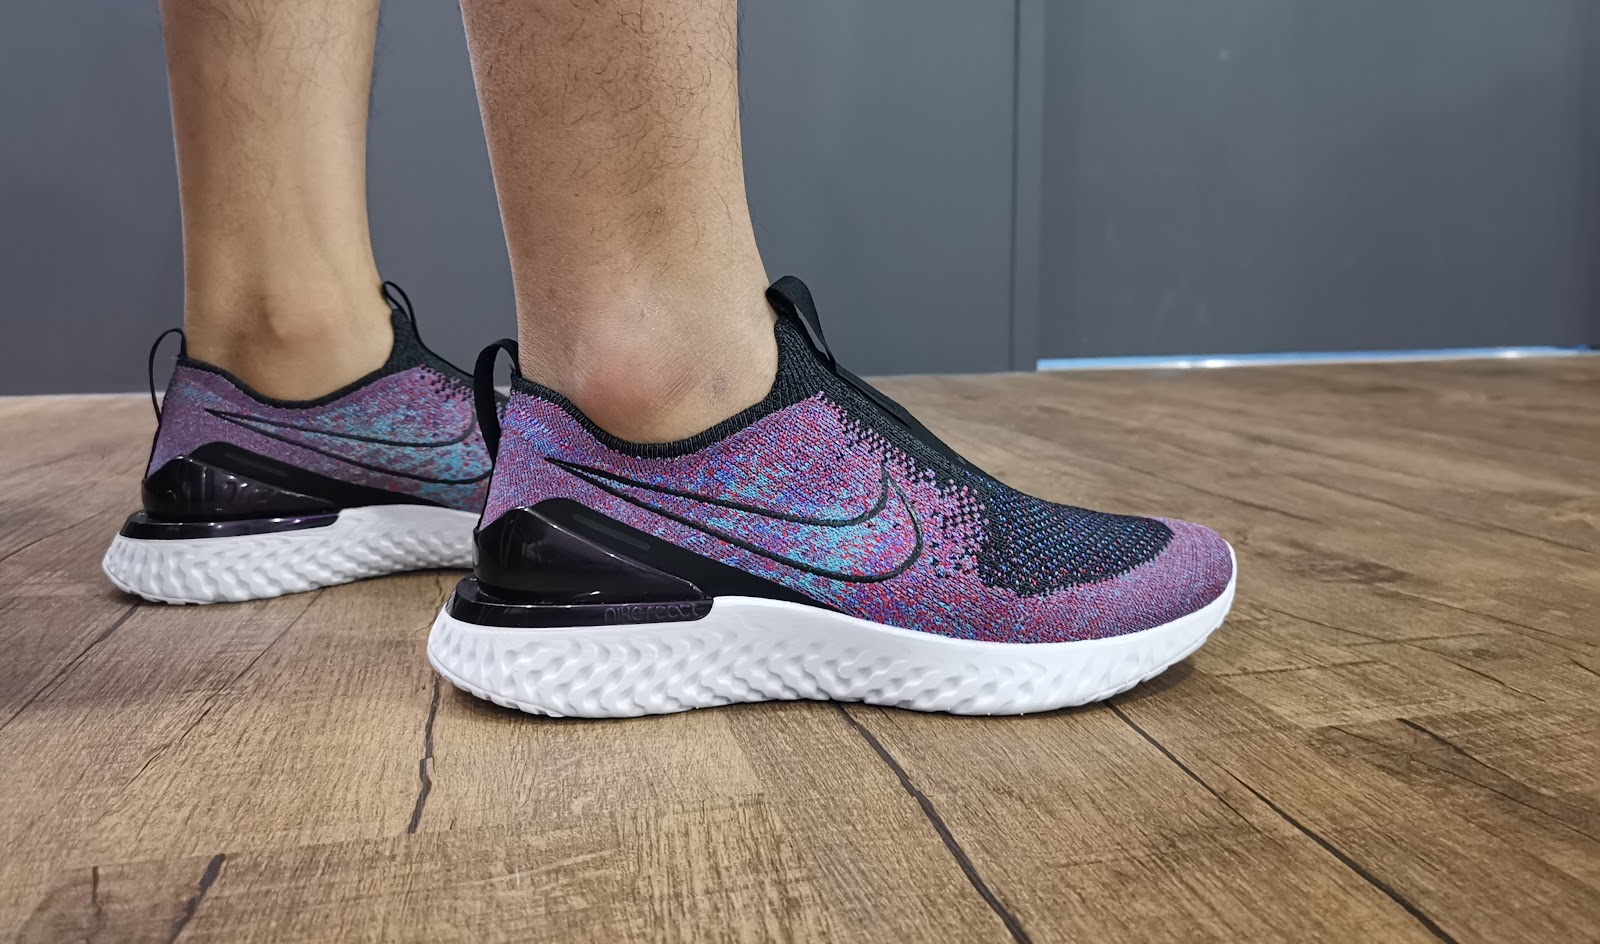 043210efeabed Nike Took Its Epic React Sneaker And Made It Even Better